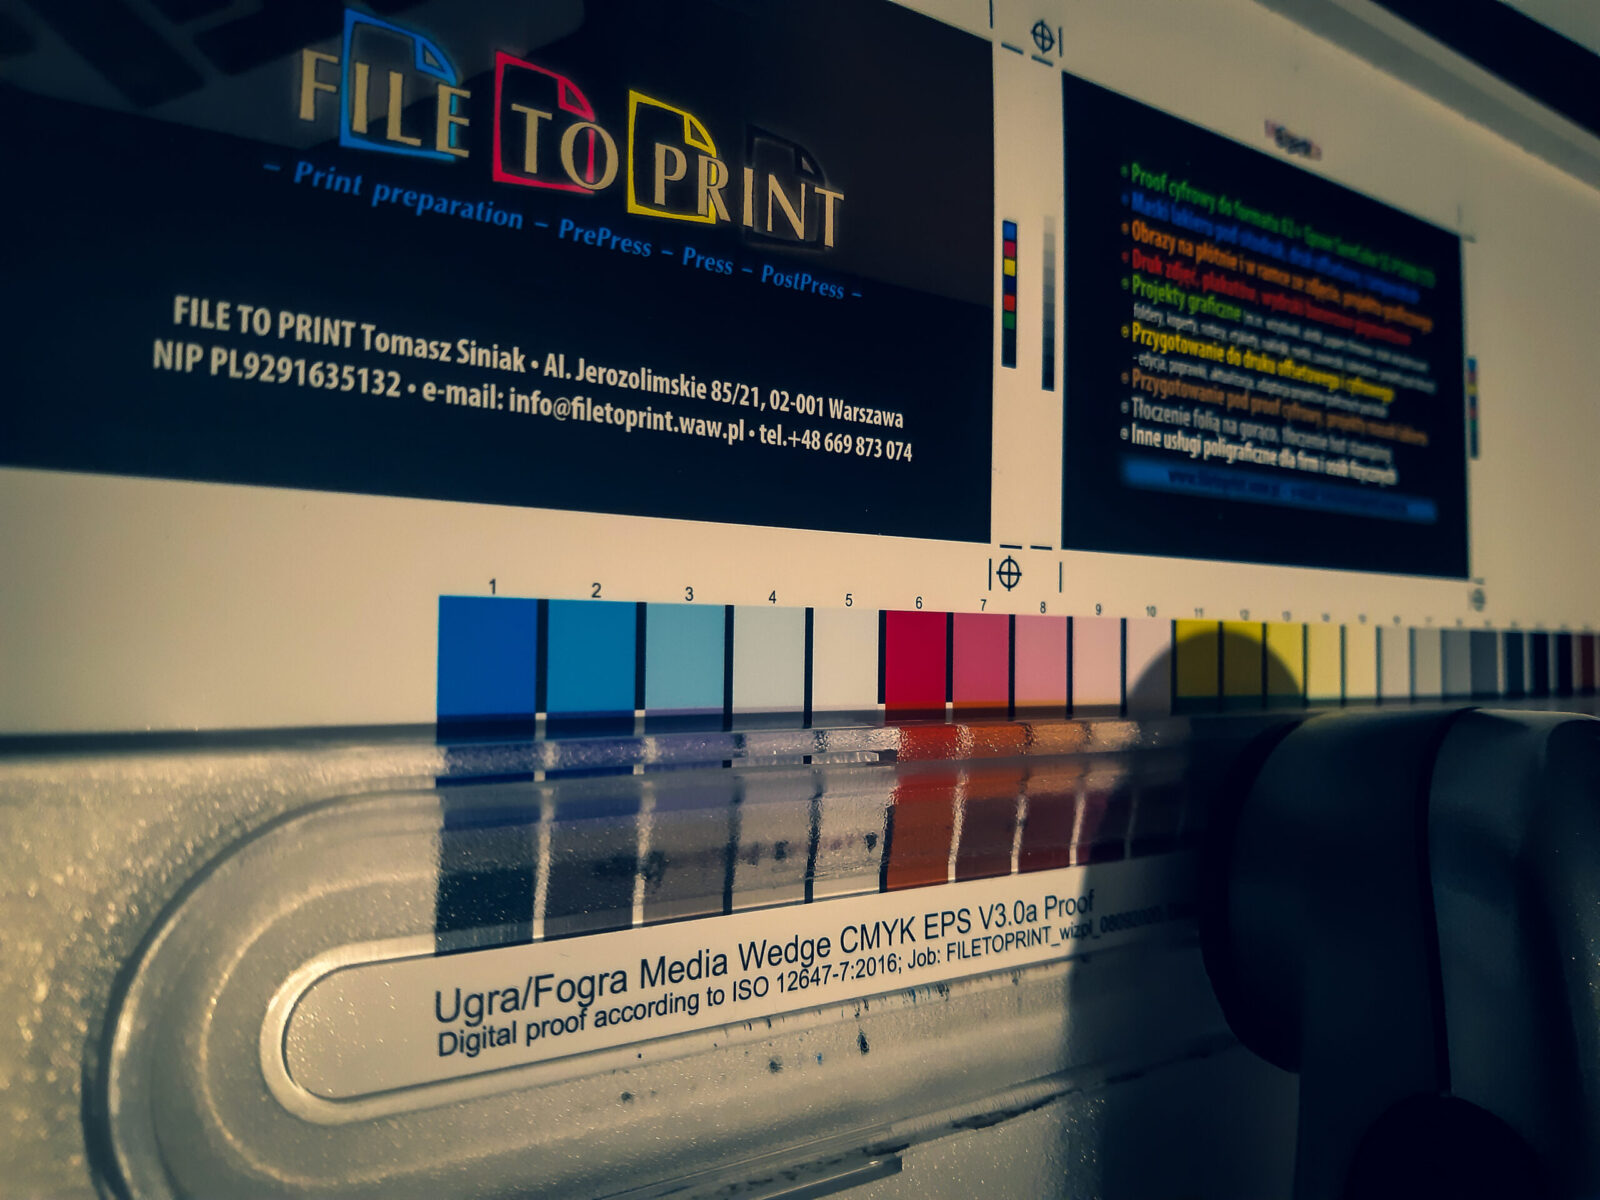 A2 Size Contract Proof Filetoprint Co Uk